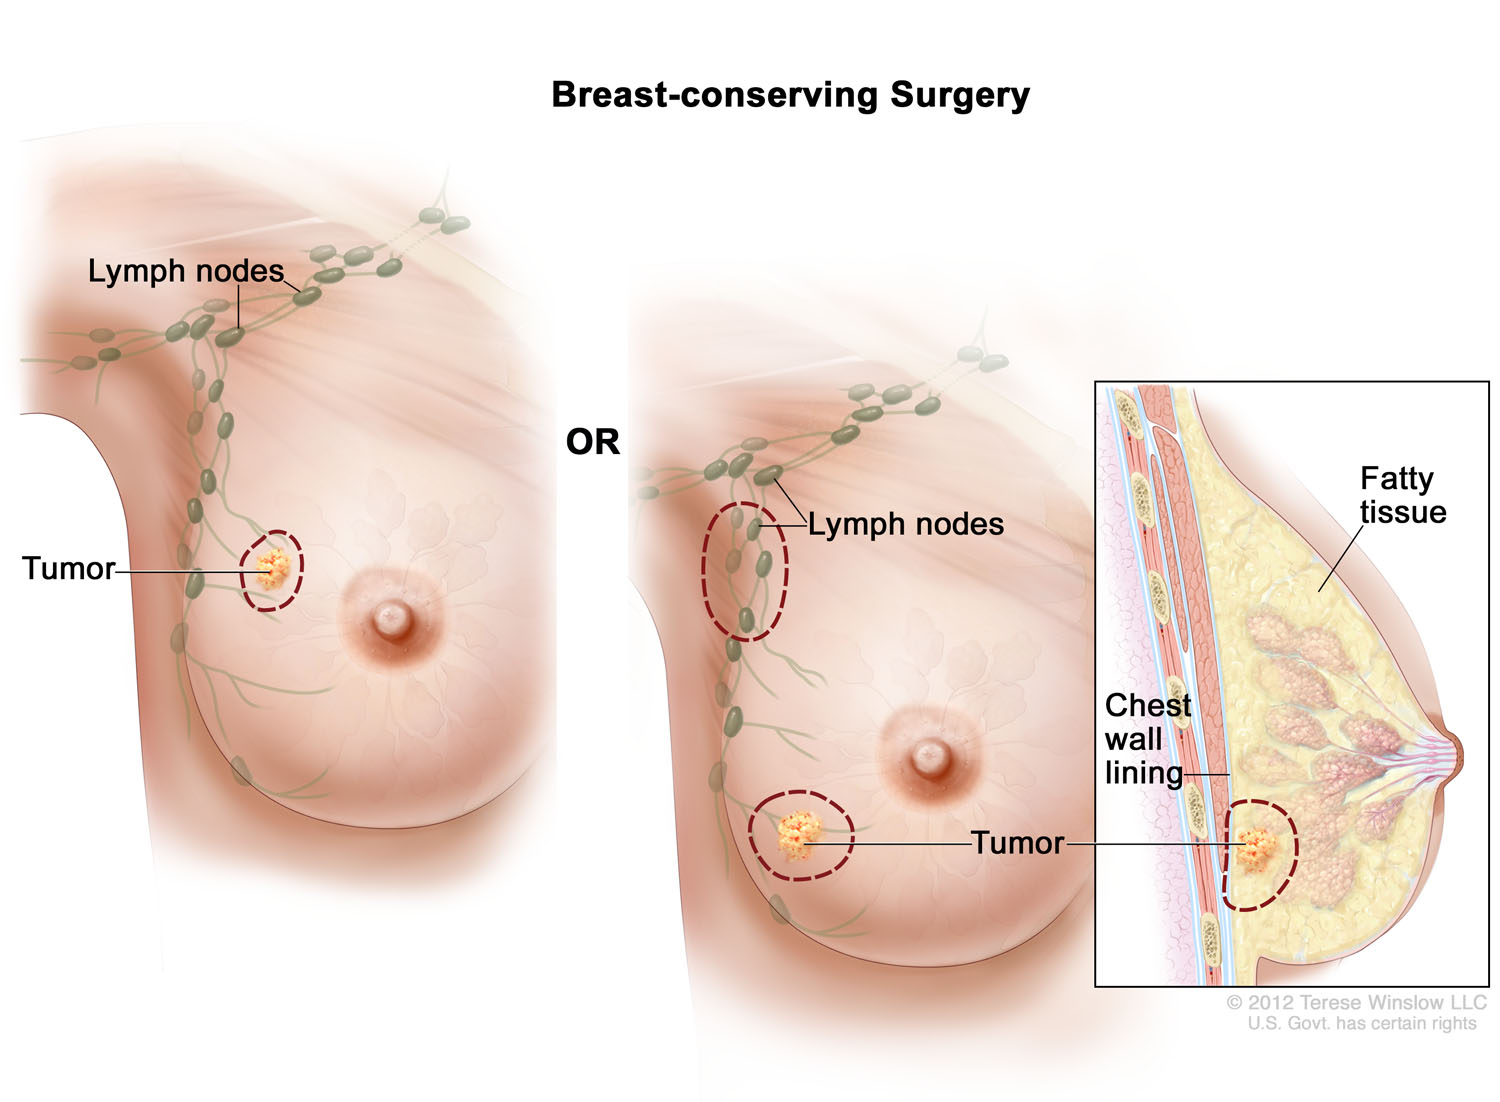 Breast-conserving Surgery